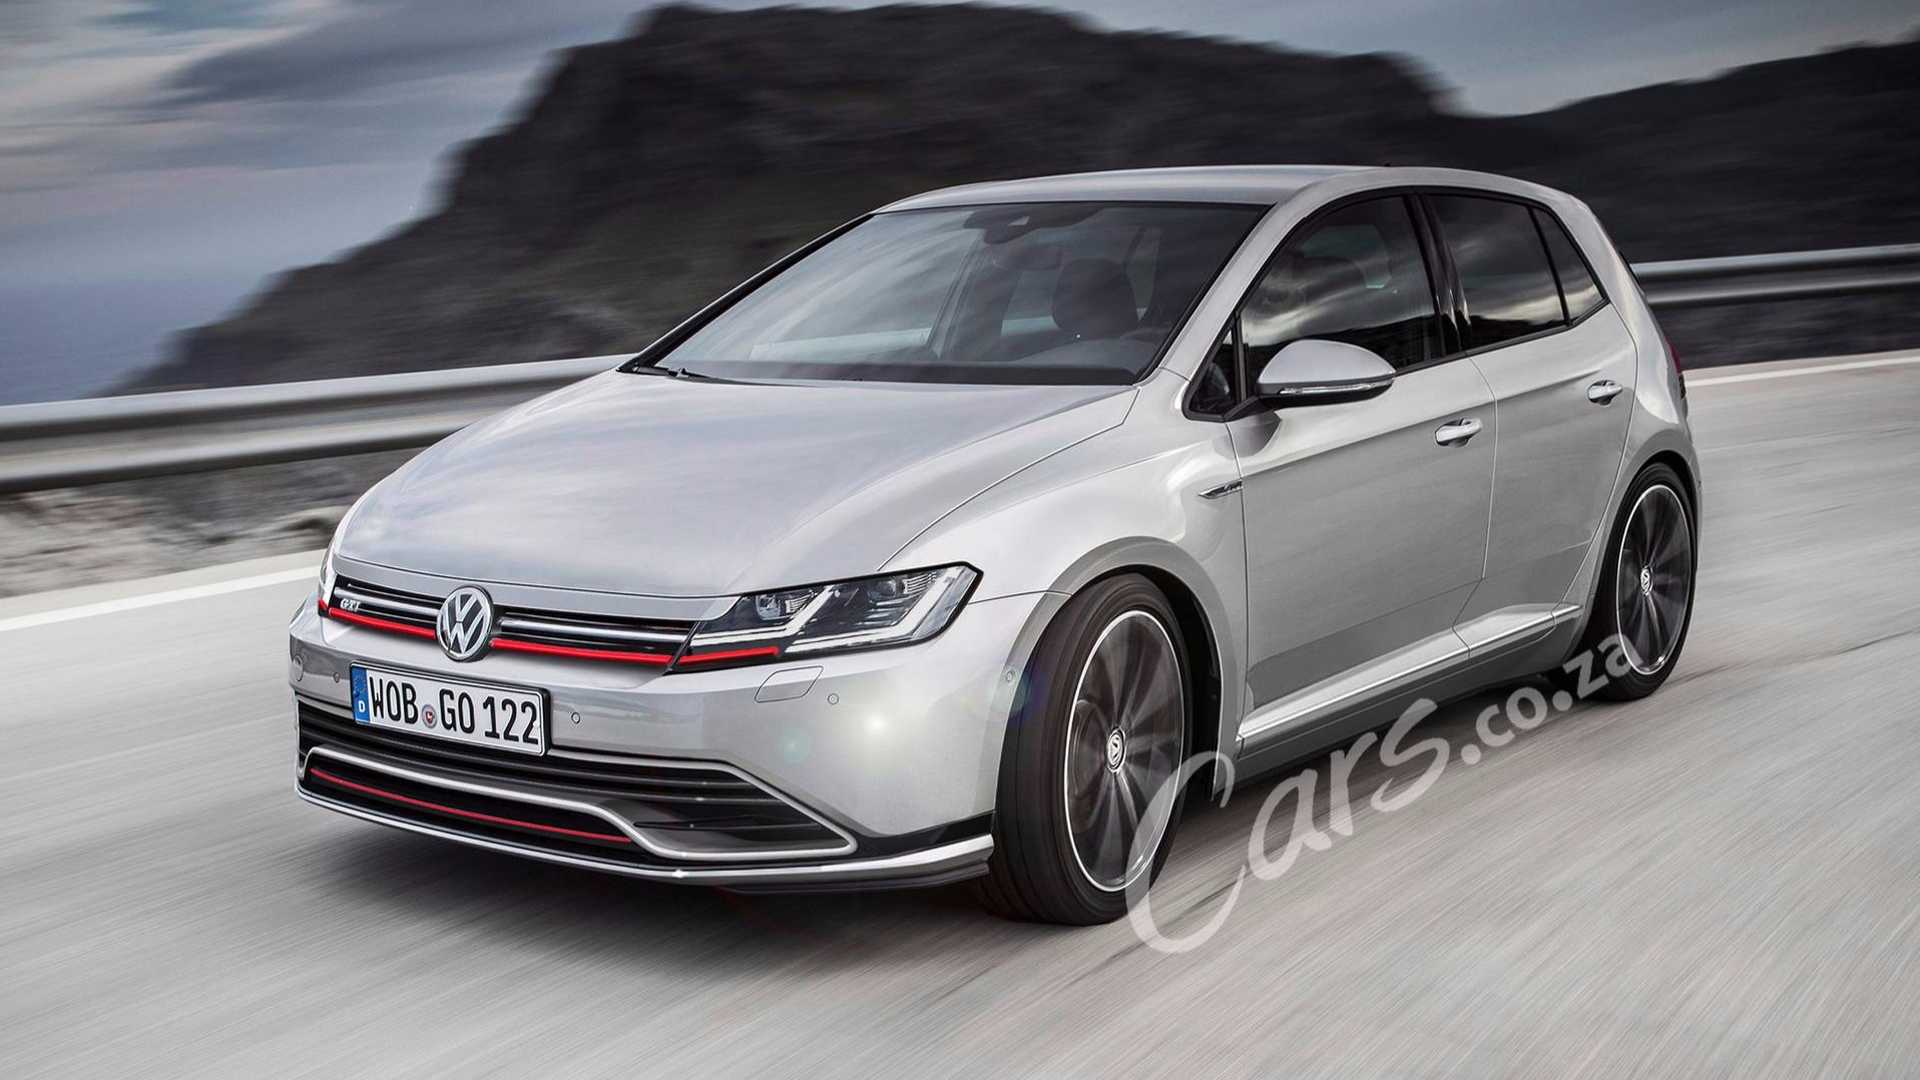 50 Gallery of 2020 Vw Models Photos with 2020 Vw Models